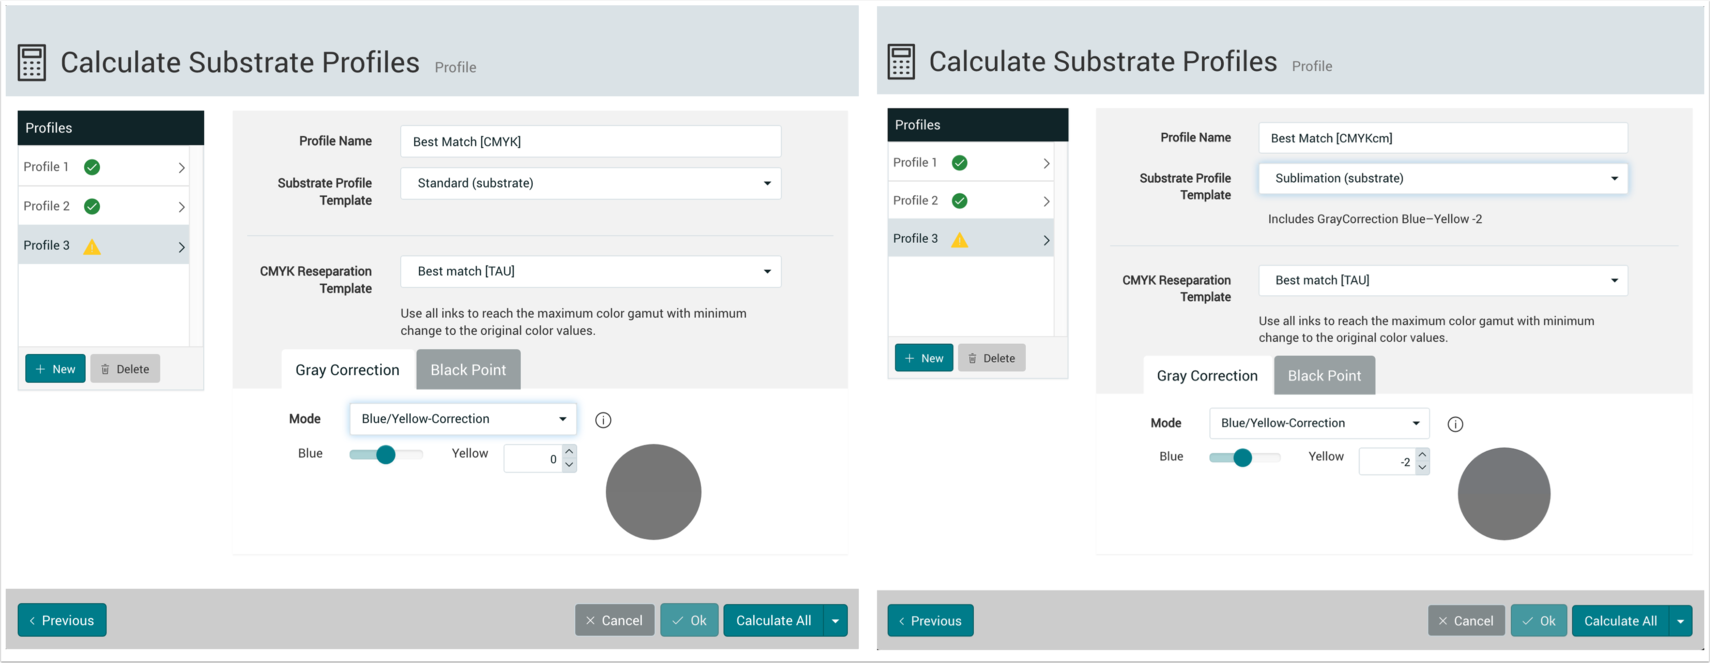 Calculate Substrate Profiles - 1.7.5